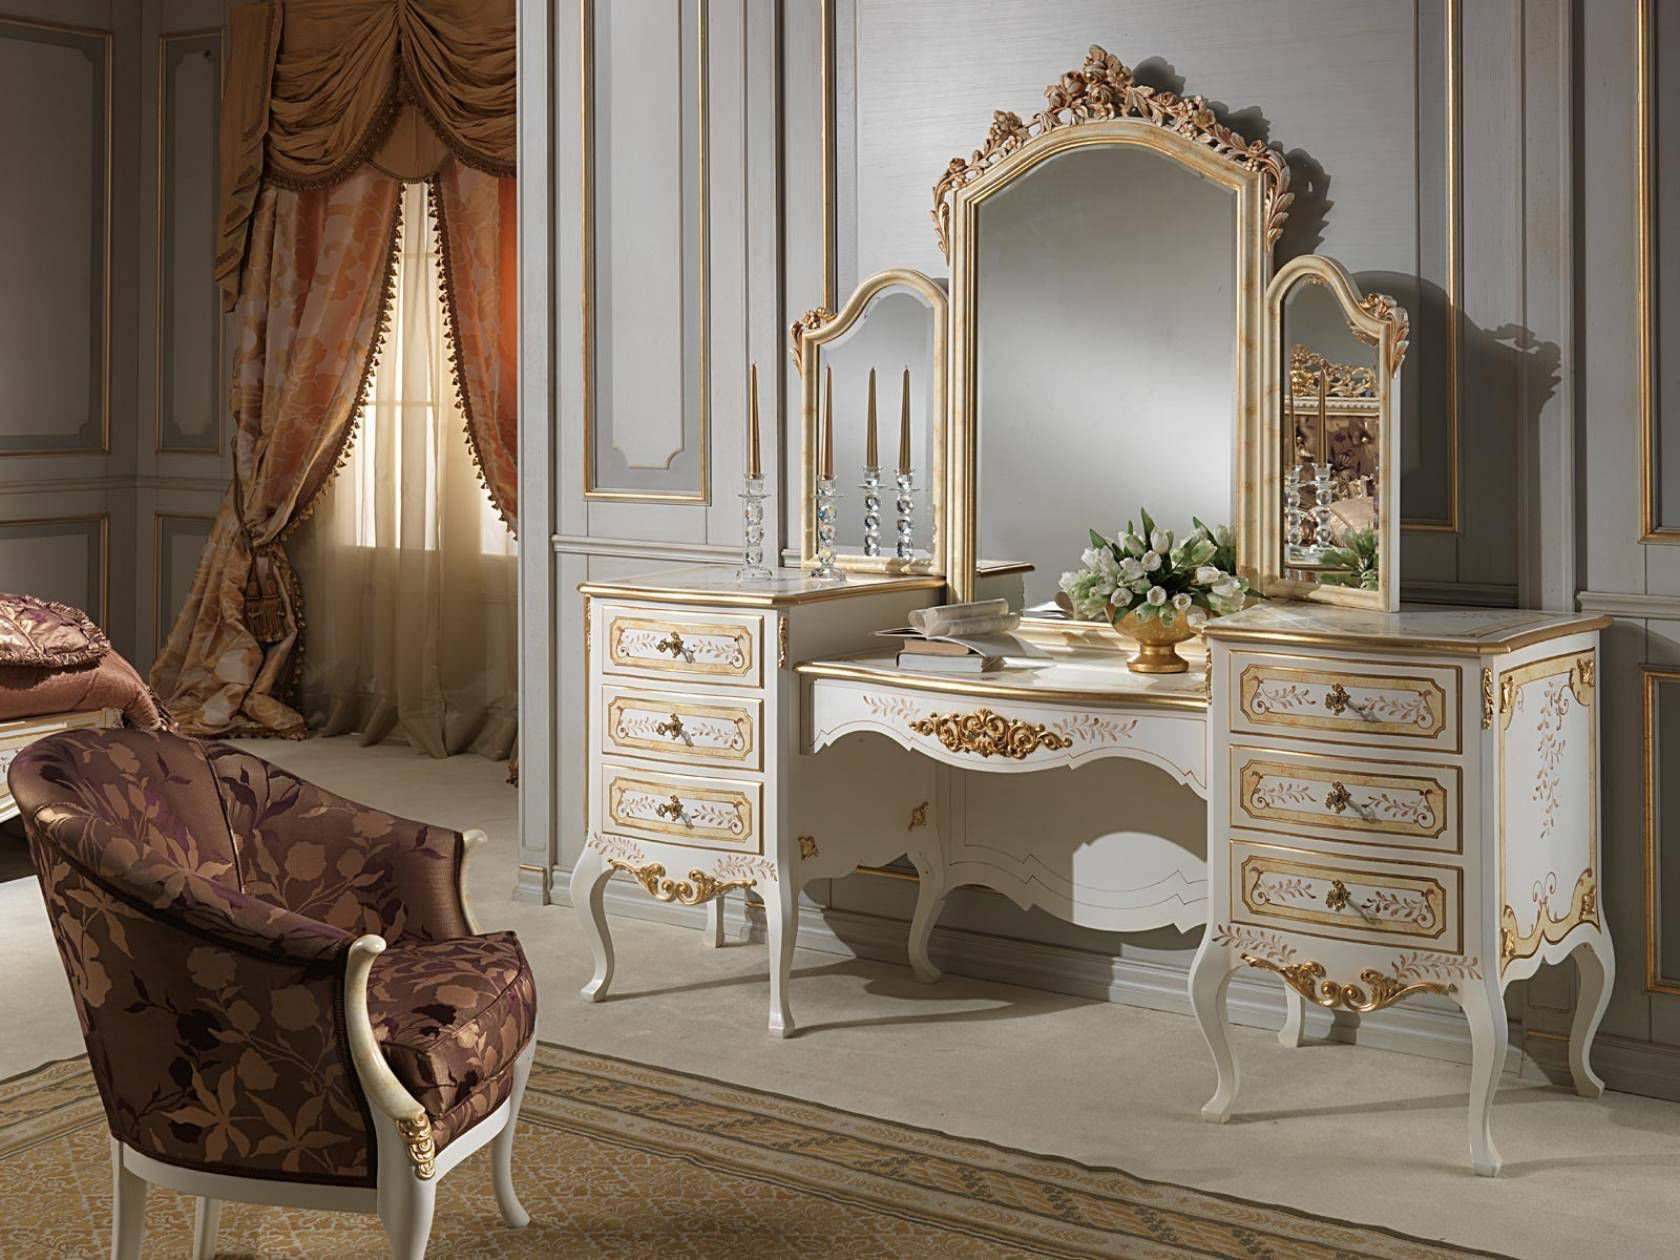 one concept corner and mirror trend pier glass with for vanity incredible style table bedroom furniture drawer set mirrored black white makeup amazing pict wooden